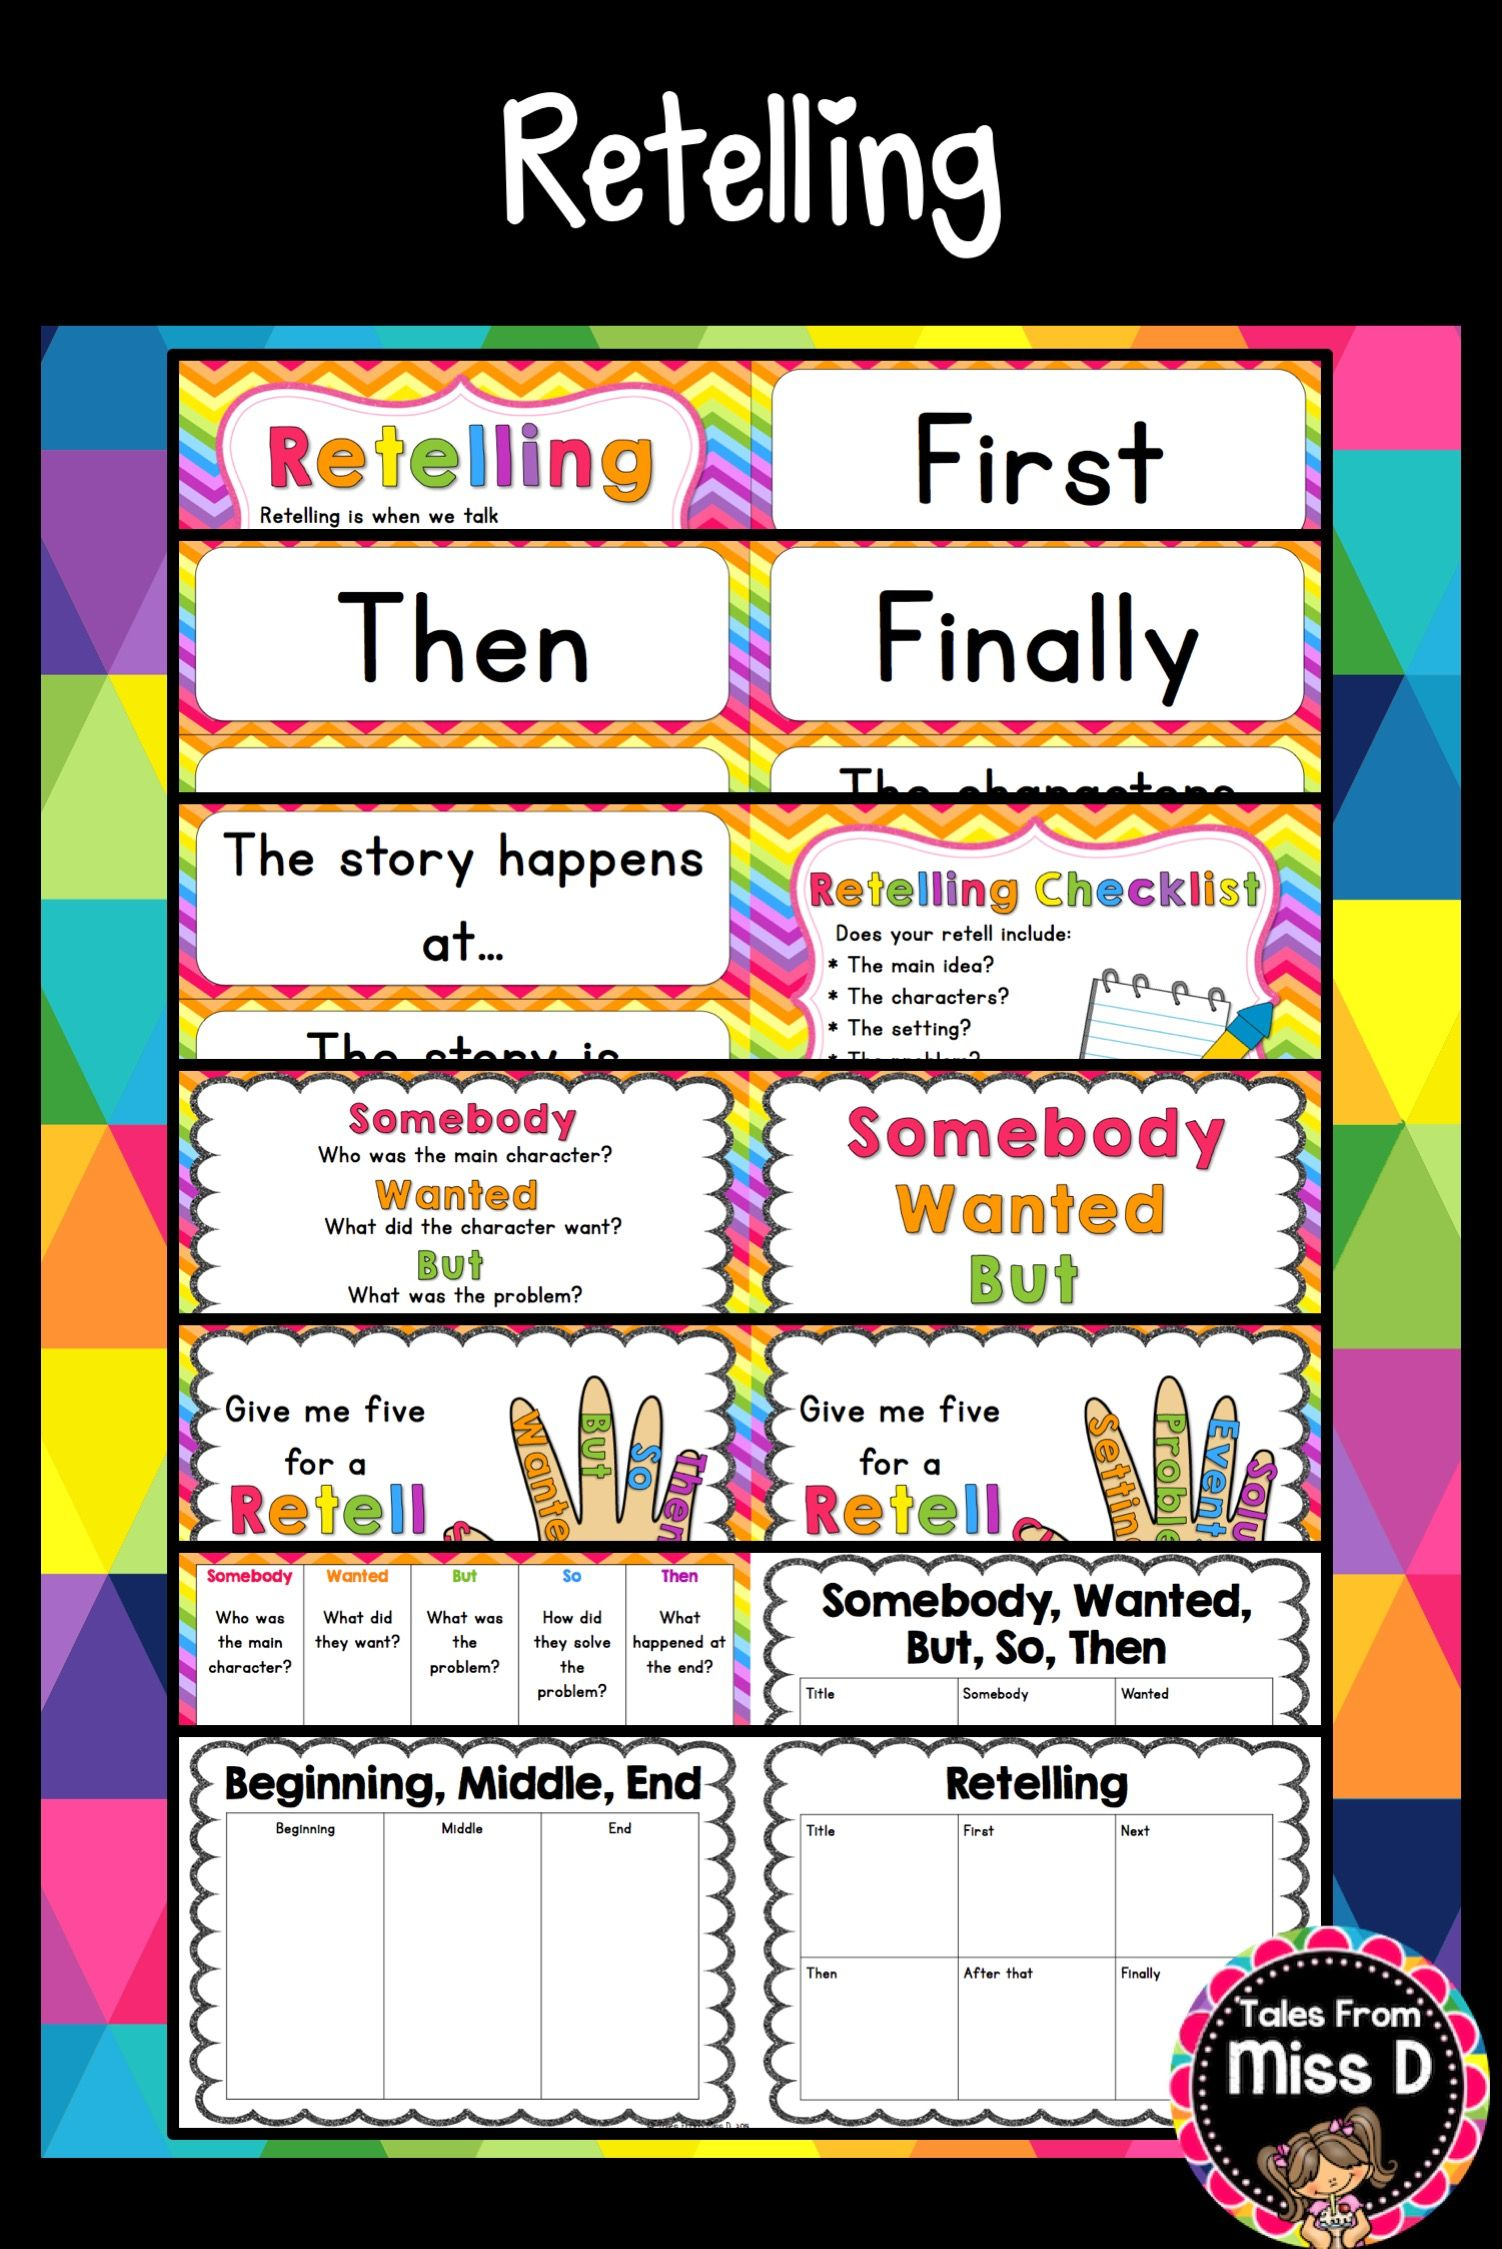 This pack contains assorted resources to use for Retelling. Included in this pack; * What is Retelling? * Prompt cards * Retelling Checklist * Somebody, Wanted, But, So, Then * Give me Five (2 versions; elements and somebody wanted but so then) * Retelling Strips (2 versions; elements and somebody wanted but so then) * 3 graphic organisers © Tales From Miss D